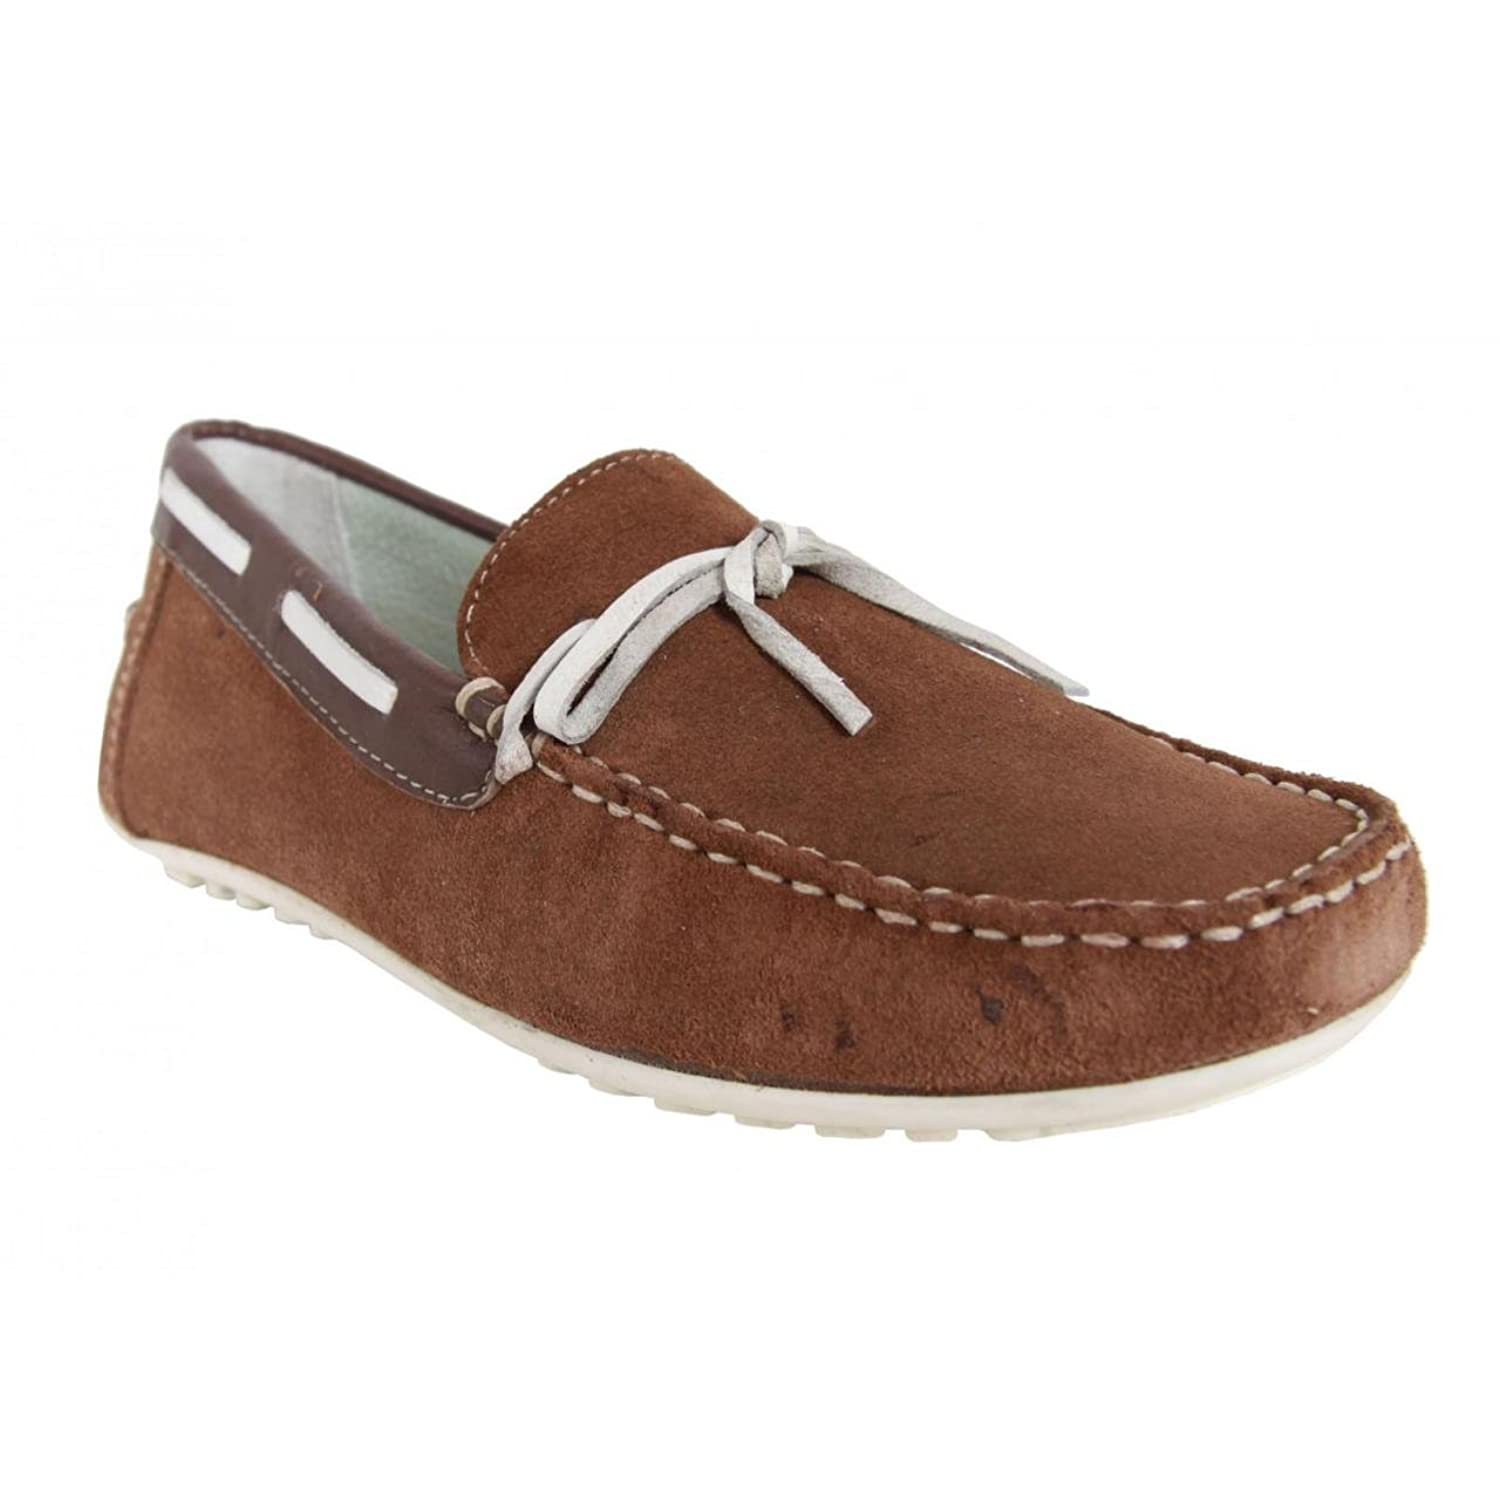 MTNG Boy and Girl Moccasins 83515 Ante Marron Oscuro Size 37: Amazon.co.uk:  Shoes & Bags